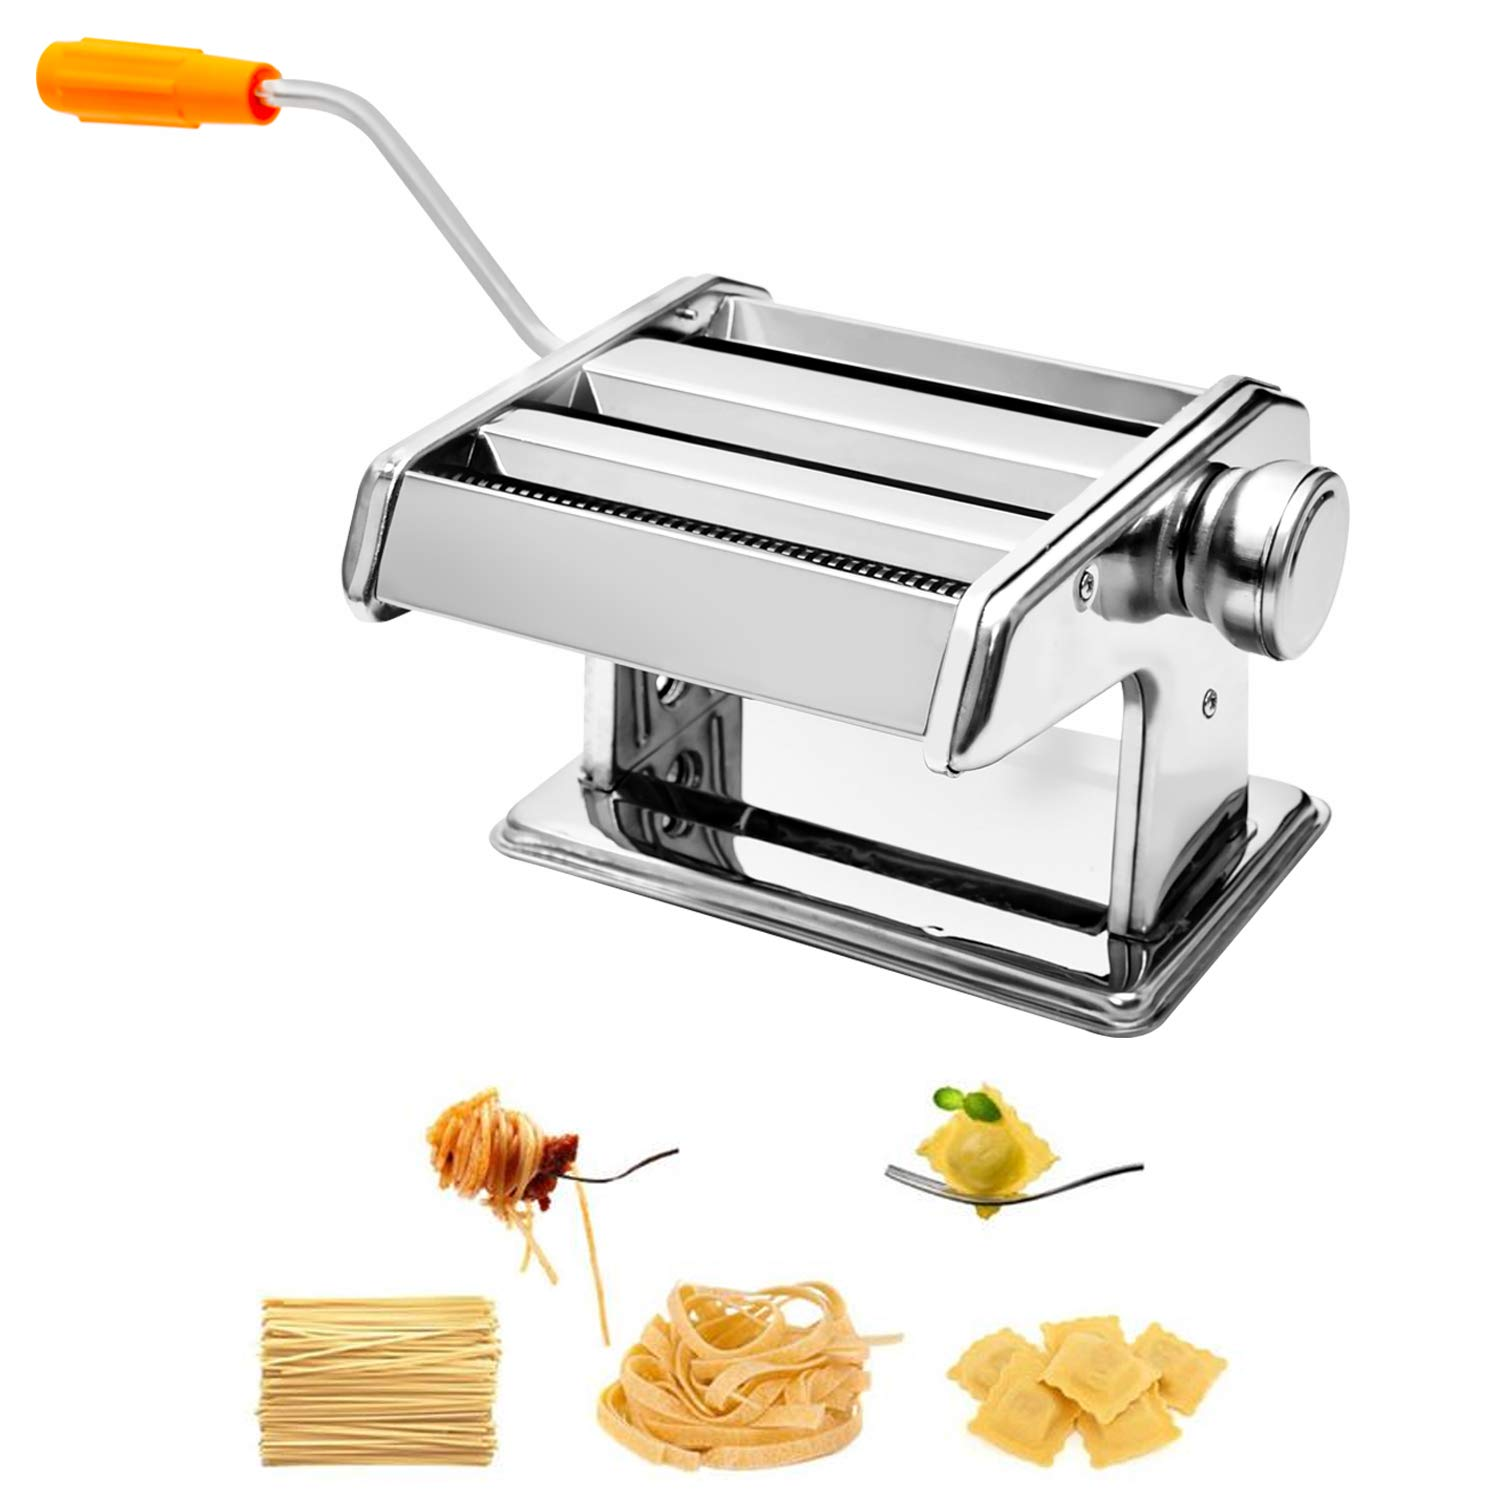 Pasta Maker, Roller Stainless Steel Pasta Noodle Maker Machine - 6 Adjustable Thickness Settings by Little World